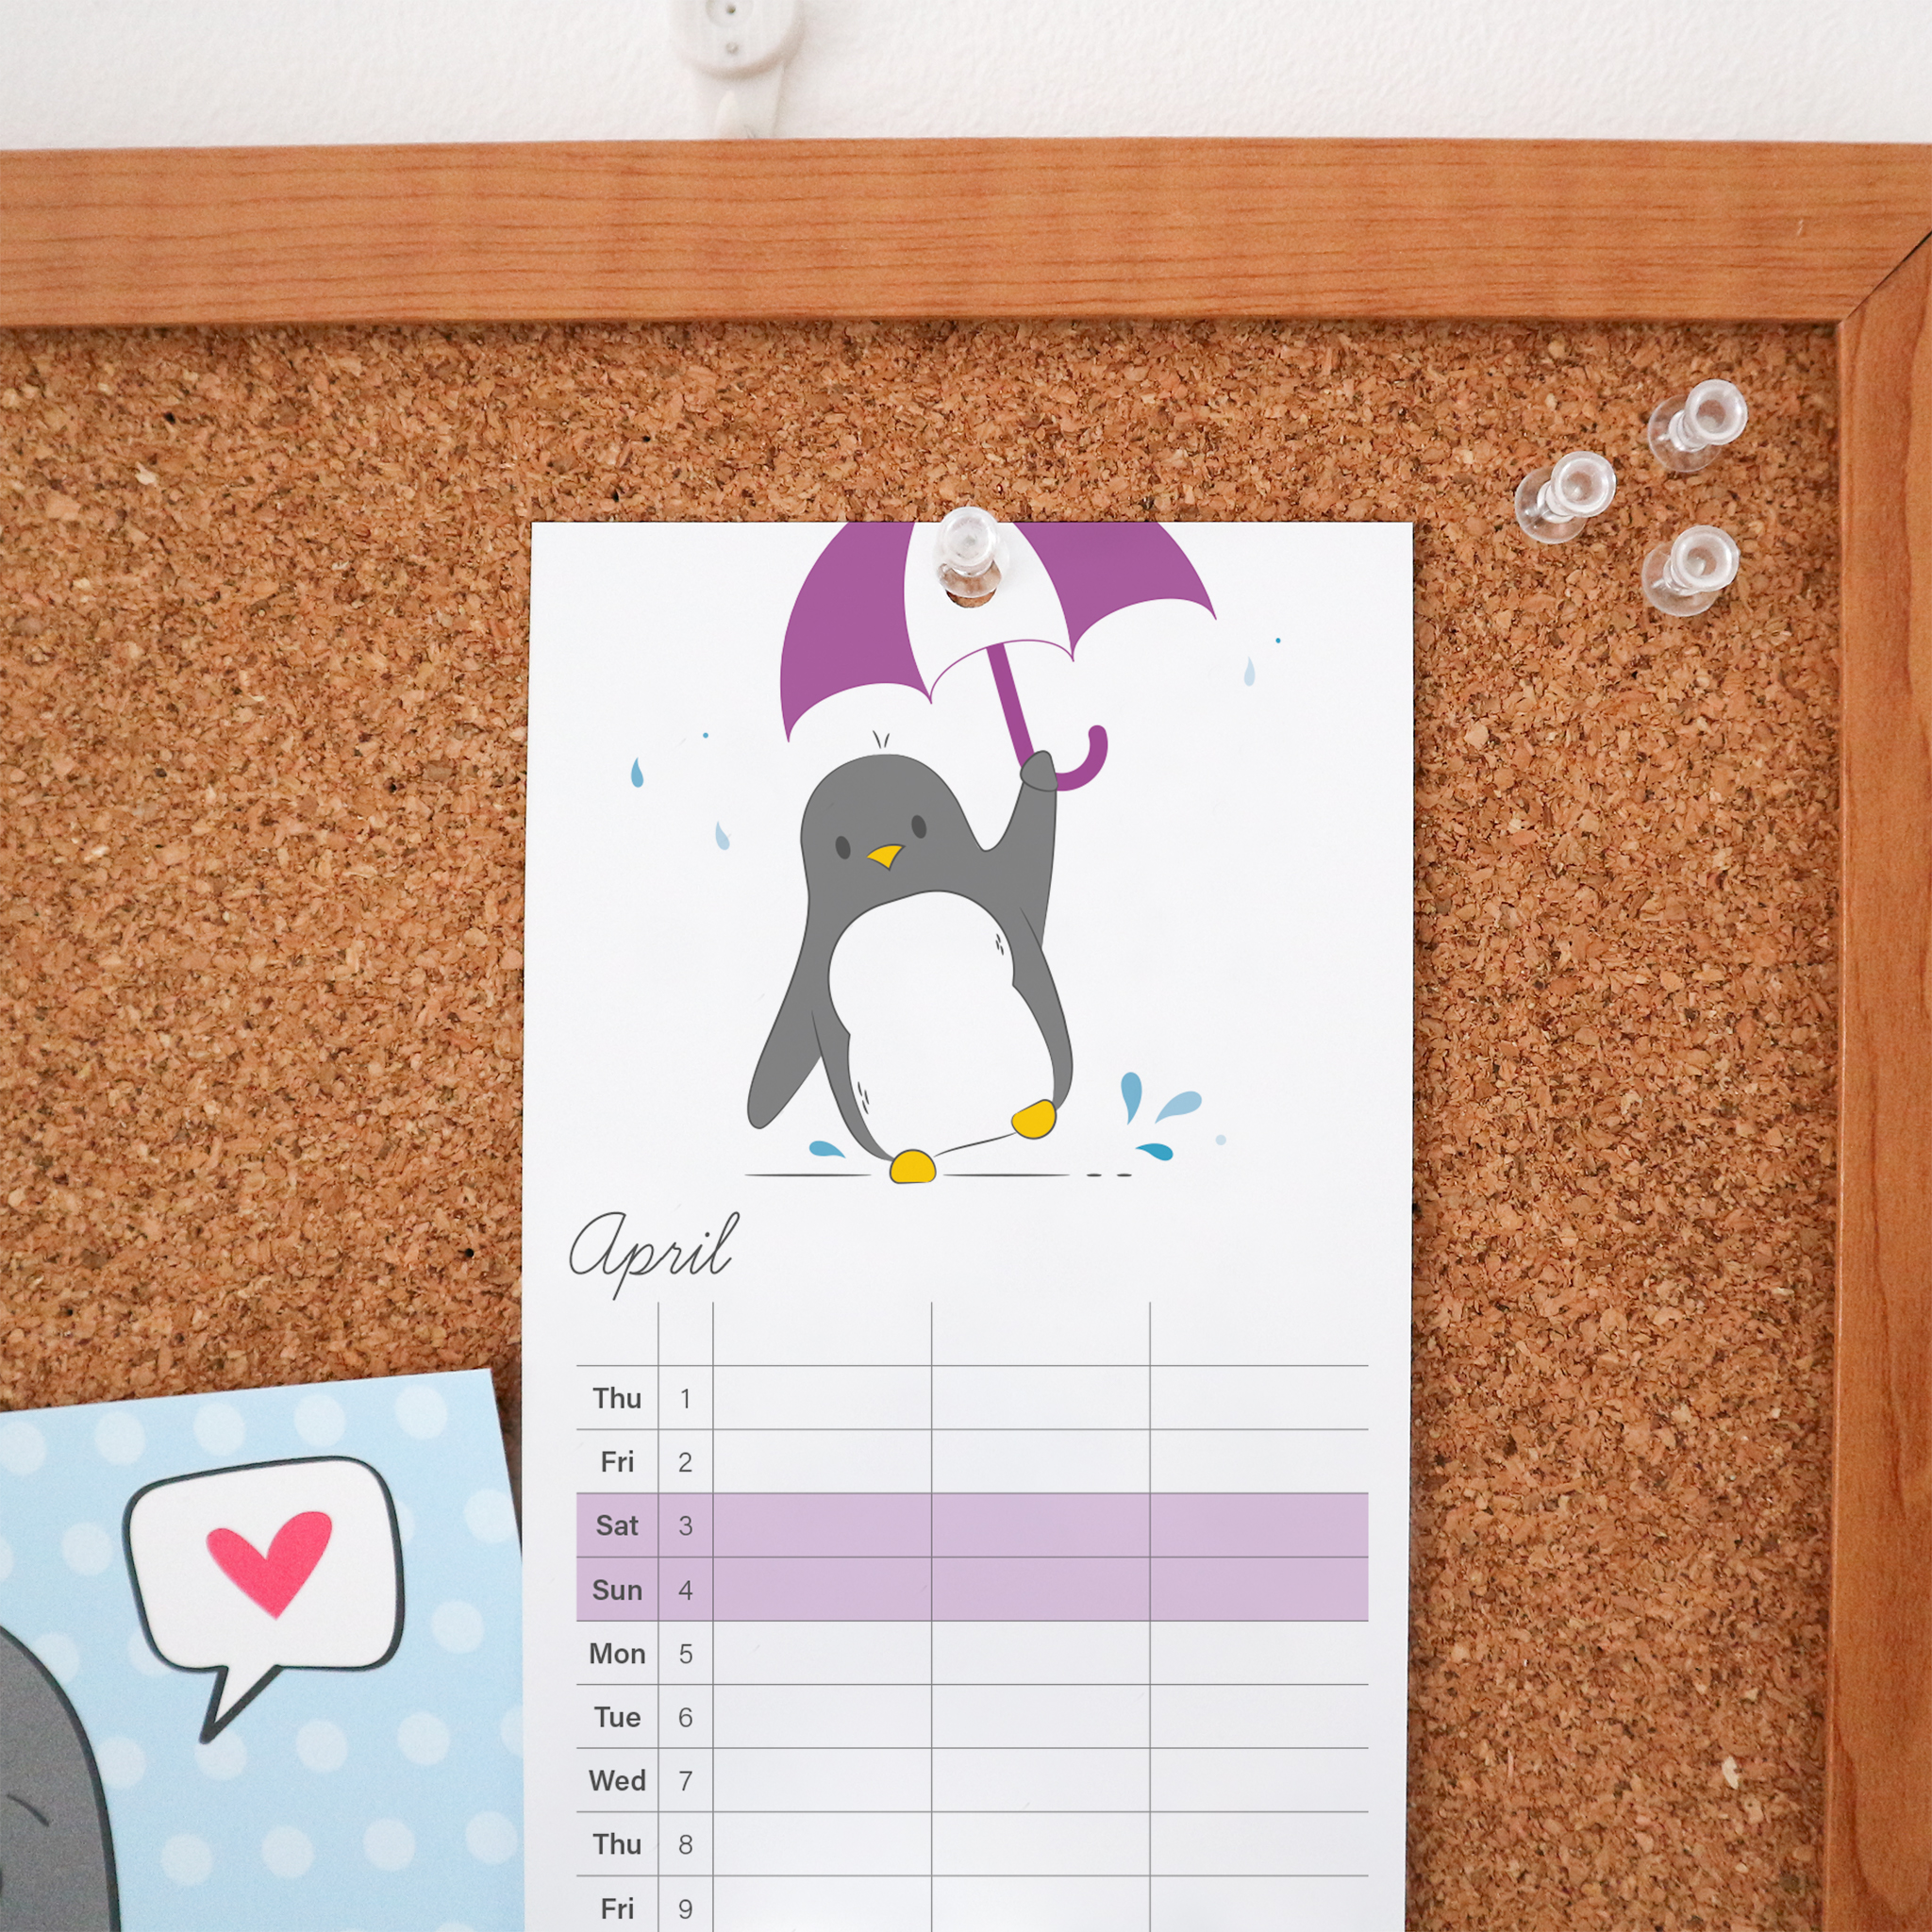 The April page of the 2021 Calendar is an illustration of penguin jumping around in some puddles with a purple and white umbrella. This Calendar is a wire bound tall calendar and is styled against a cork board background.